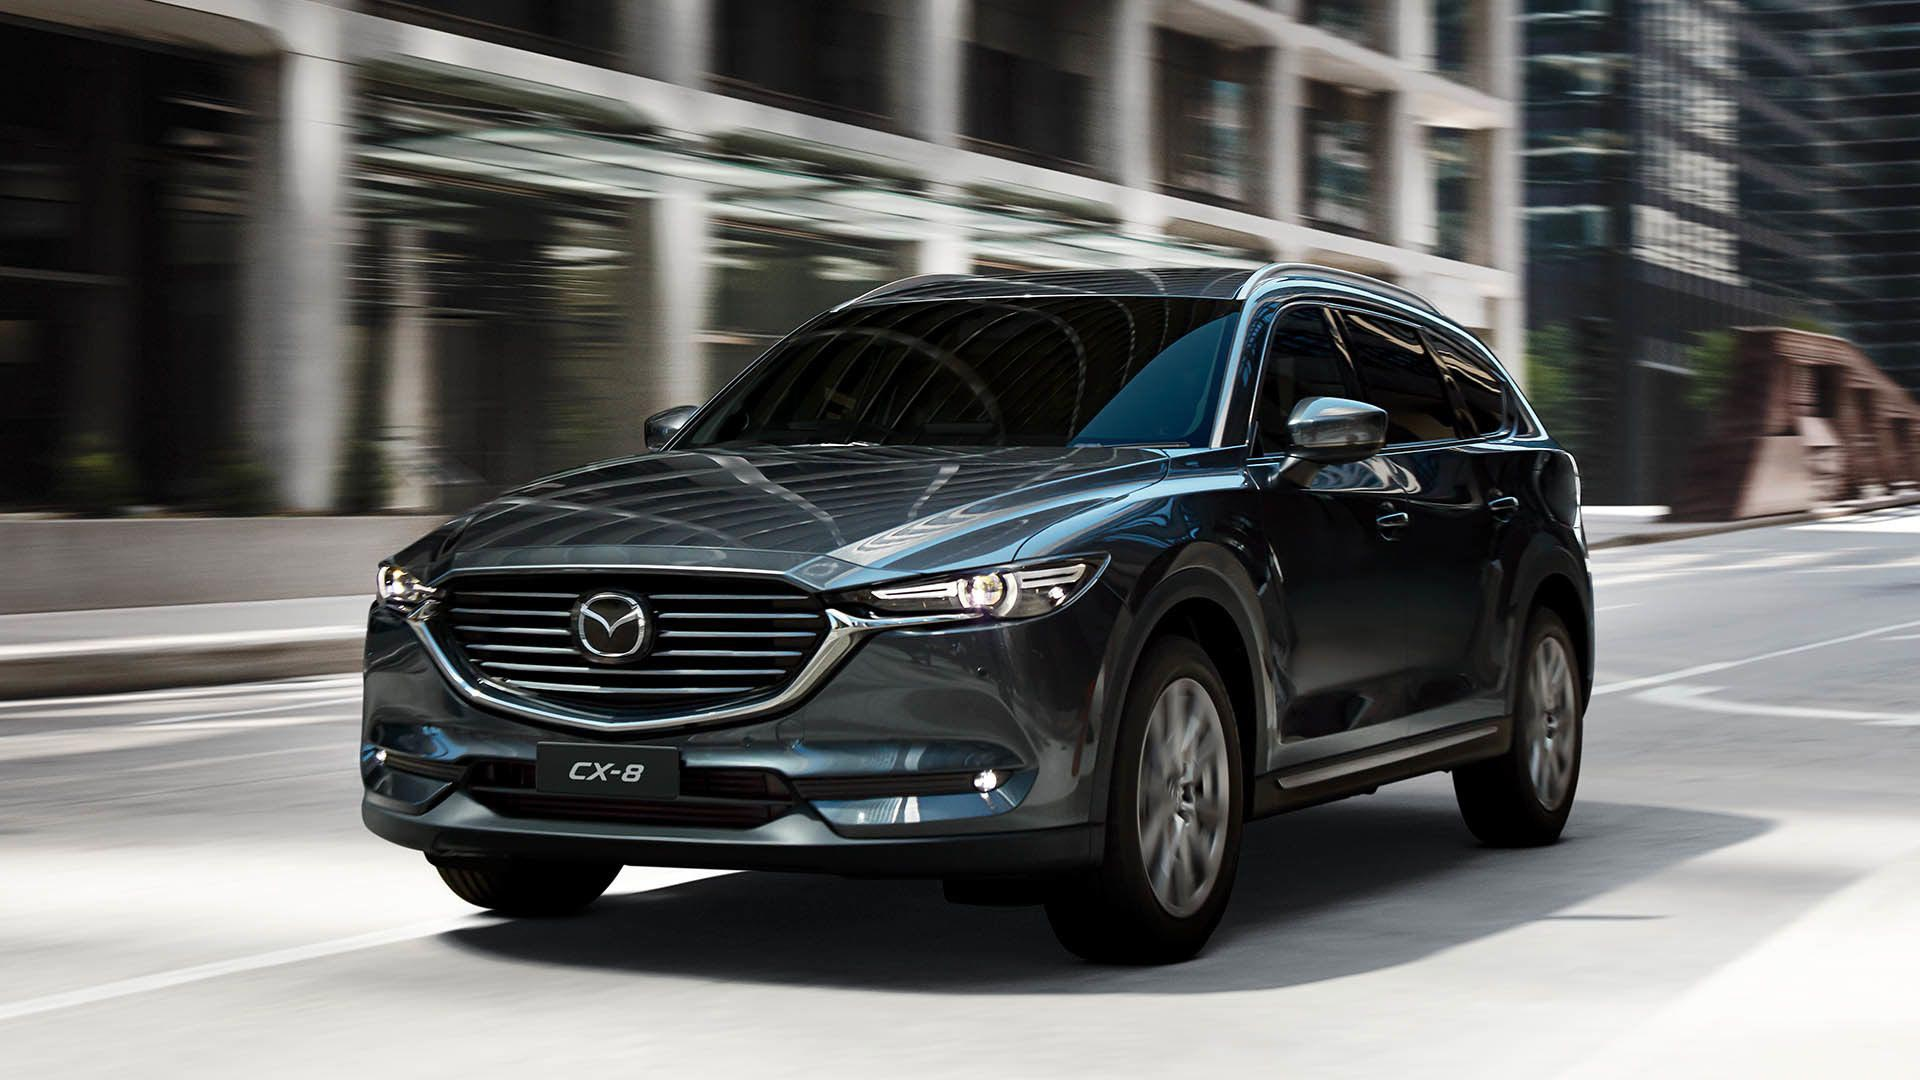 Mazda CX-8 Register your interest